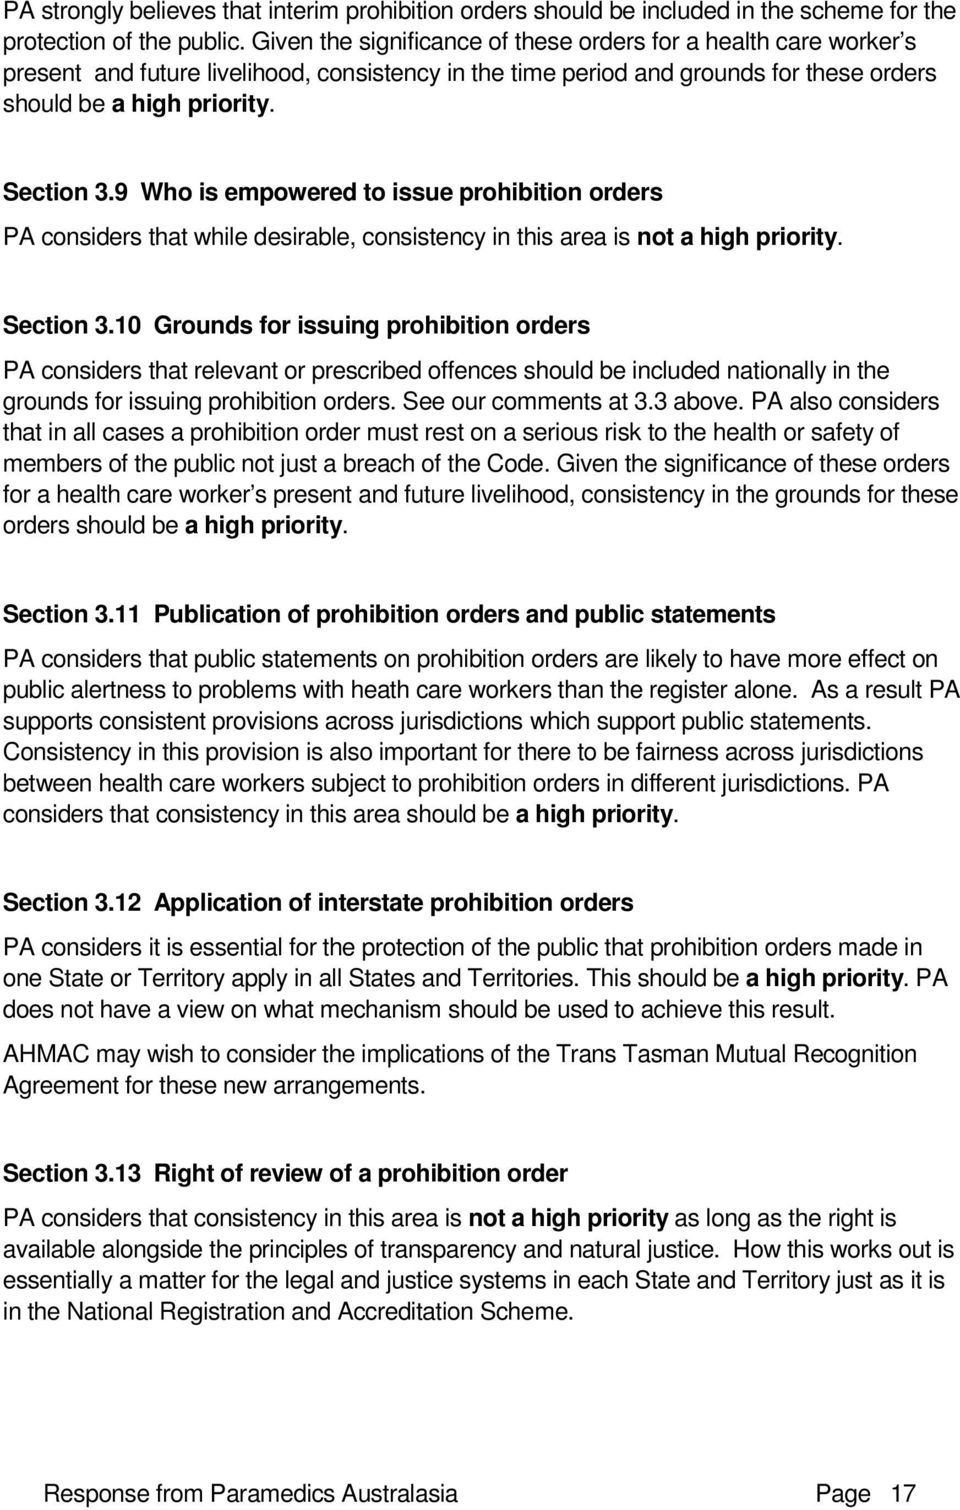 9 Who is empowered to issue prohibition orders PA considers that while desirable, consistency in this area is not a high priority. Section 3.